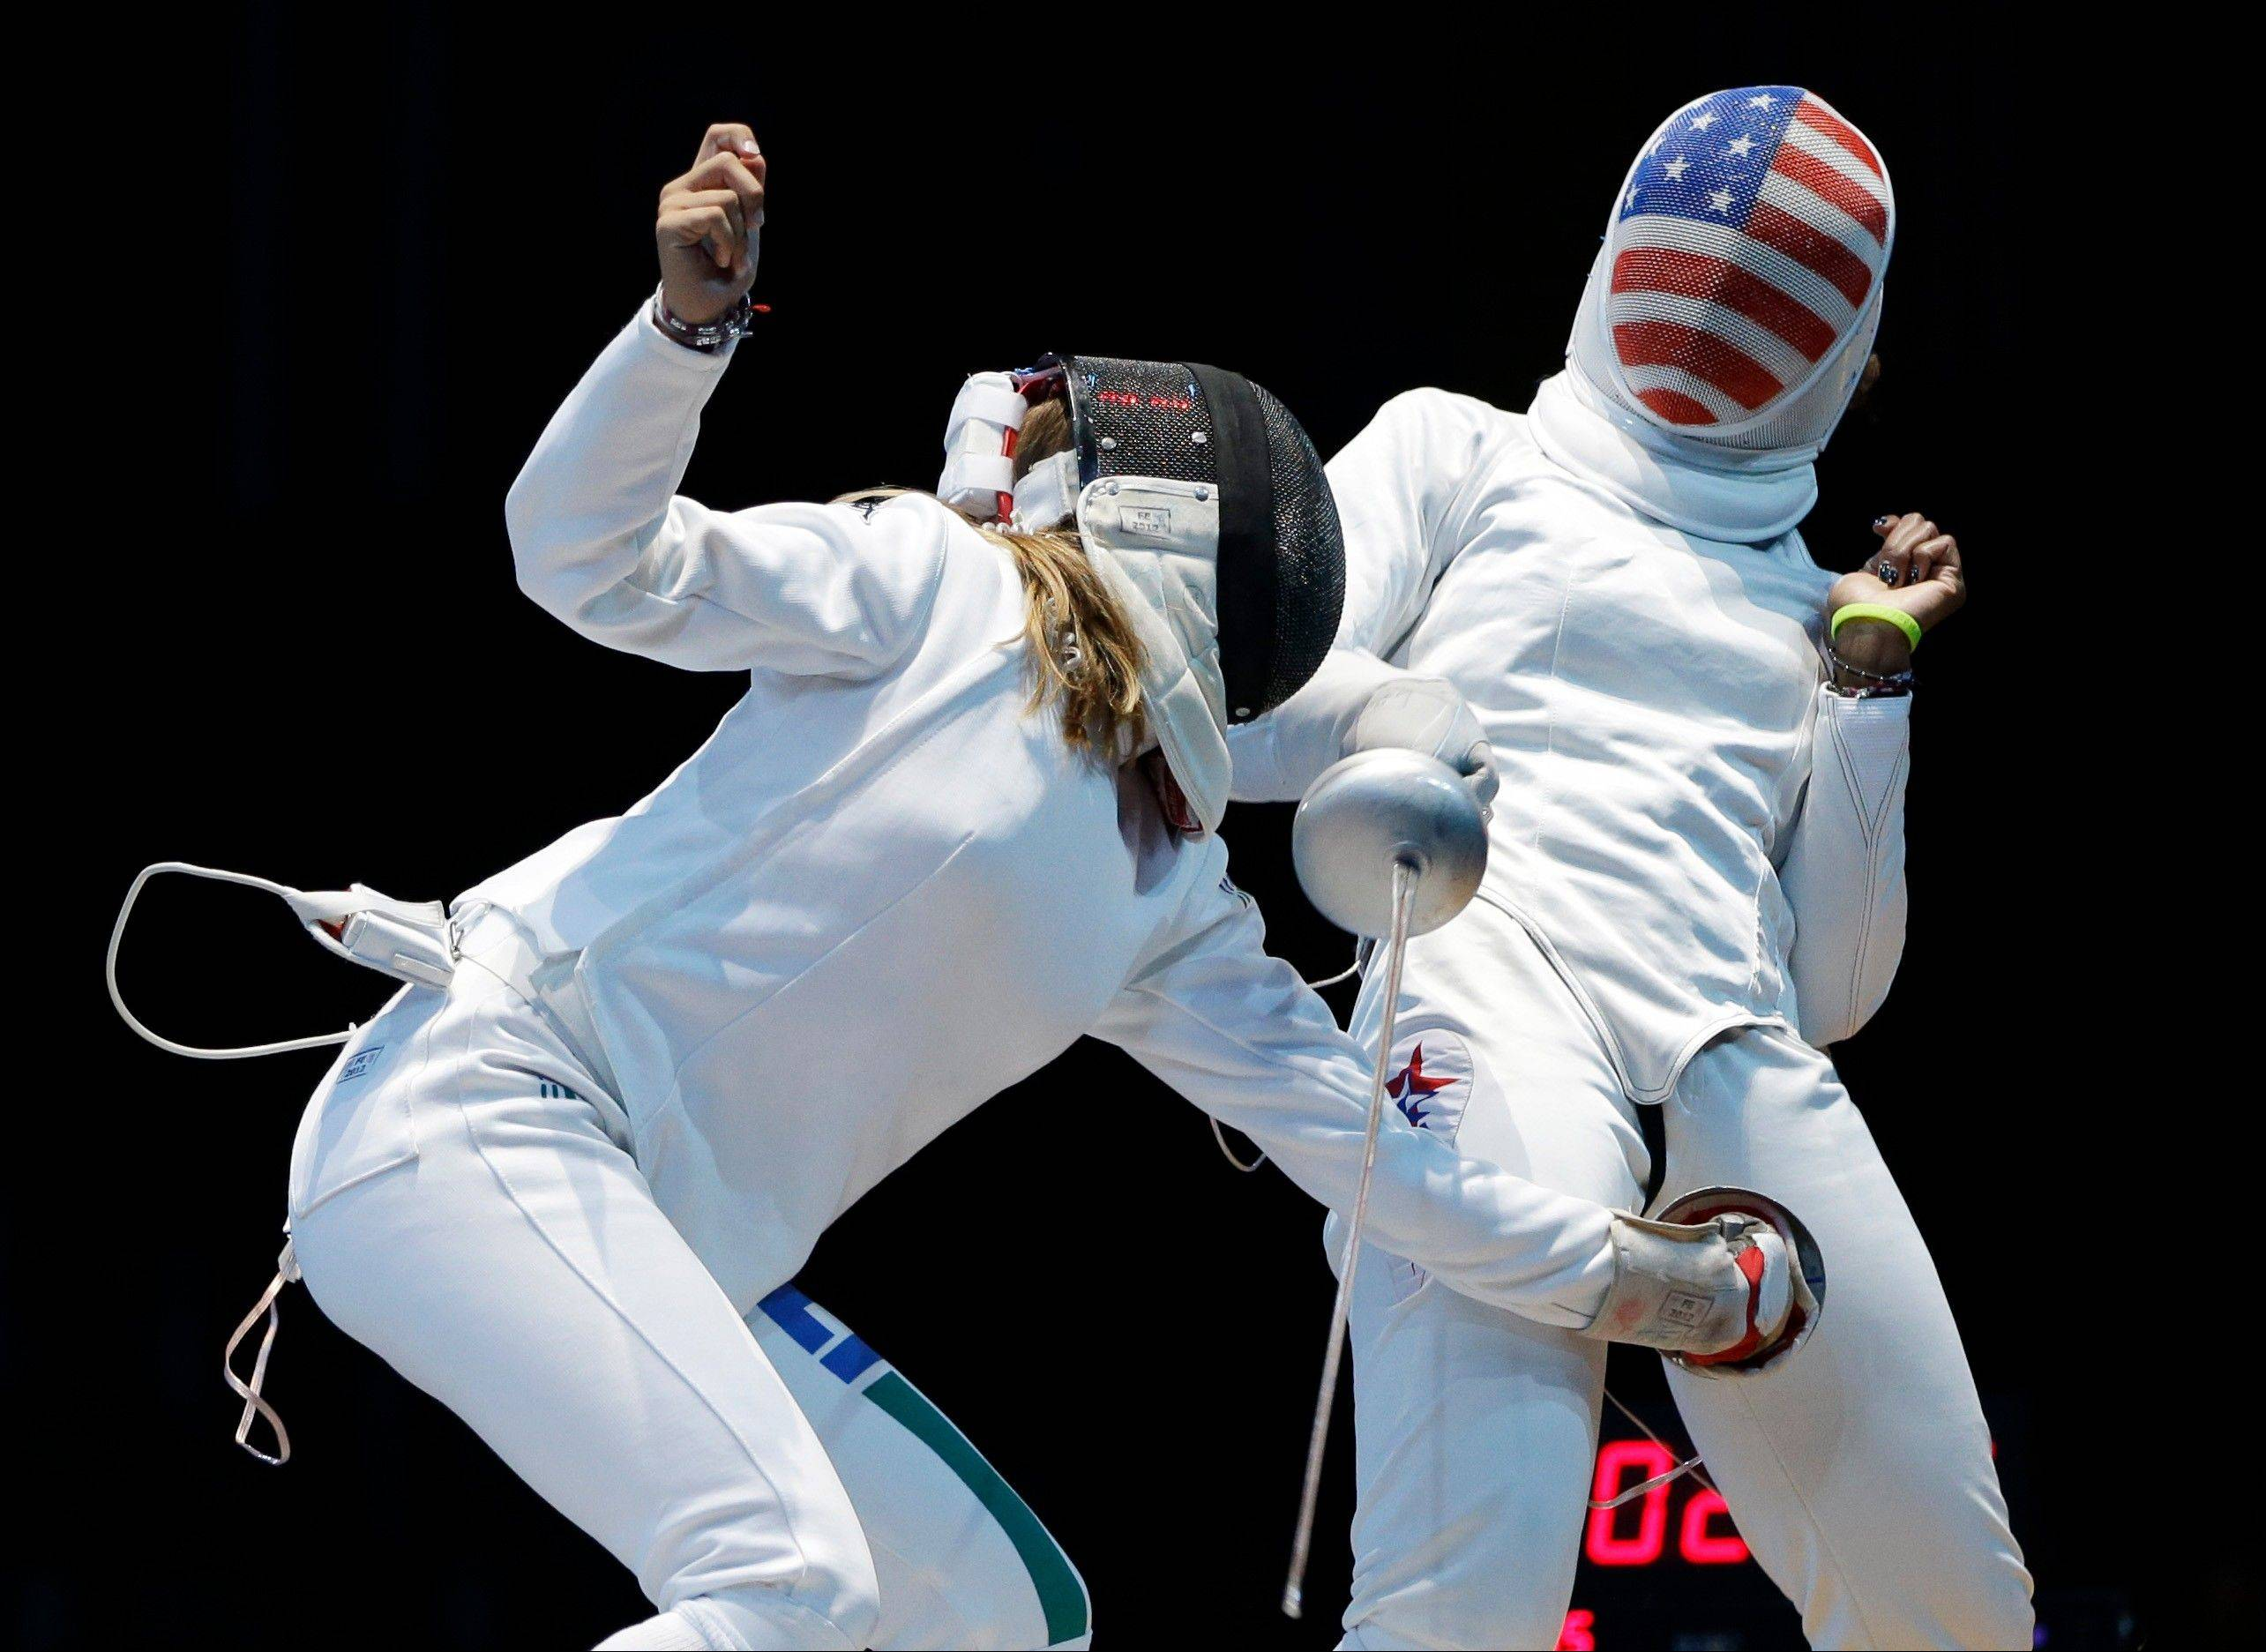 Italy�s Rossella Fiamingo, left, competes against the United States� Maya Lawrence during a match in women�s epee team fencing competition at the 2012 Summer Olympics, Saturday, Aug. 4, 2012, in London.